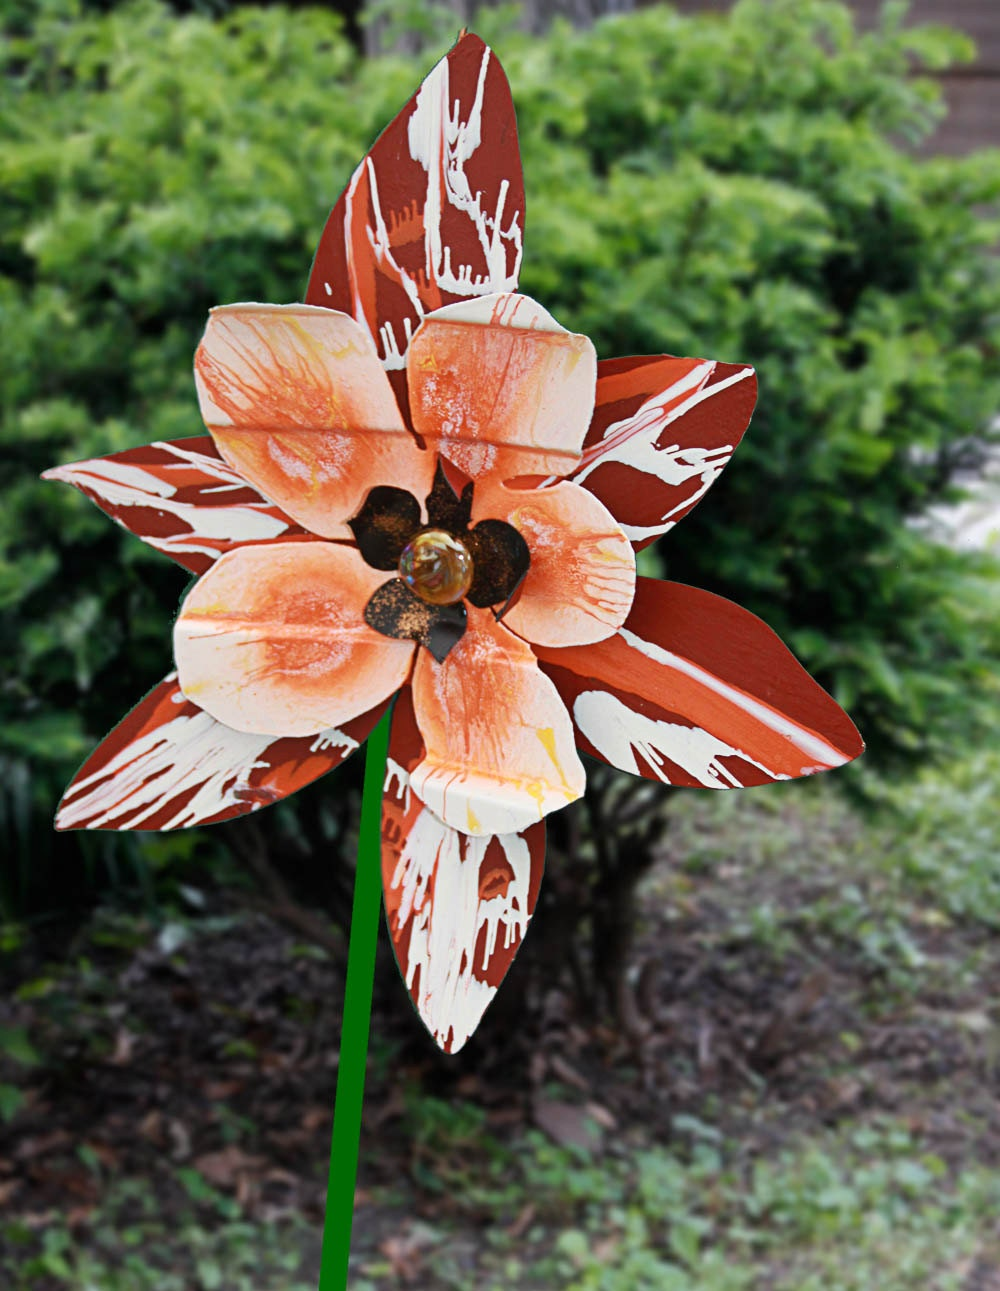 salvaged recycled metal flower sculpture use as yard art